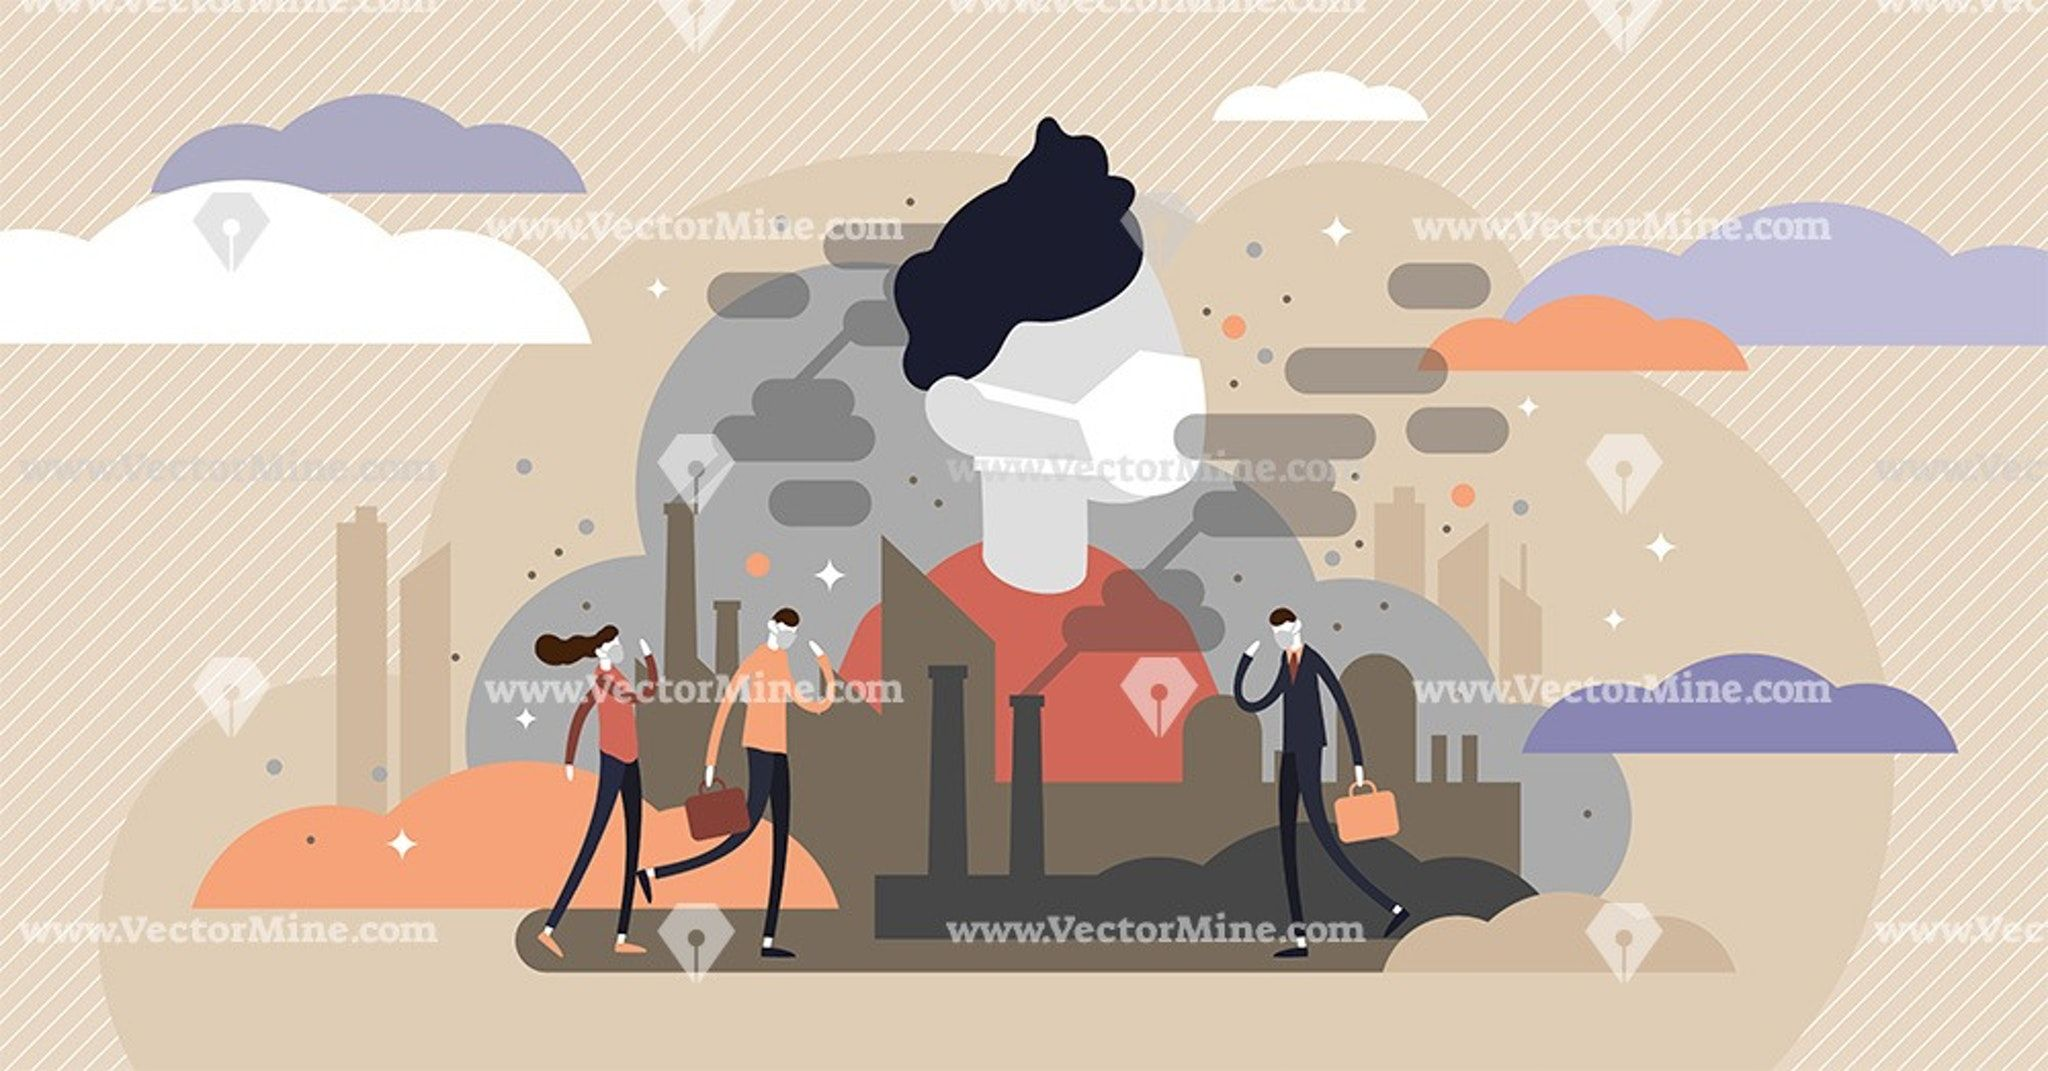 Urban air pollution tiny persons concept vector